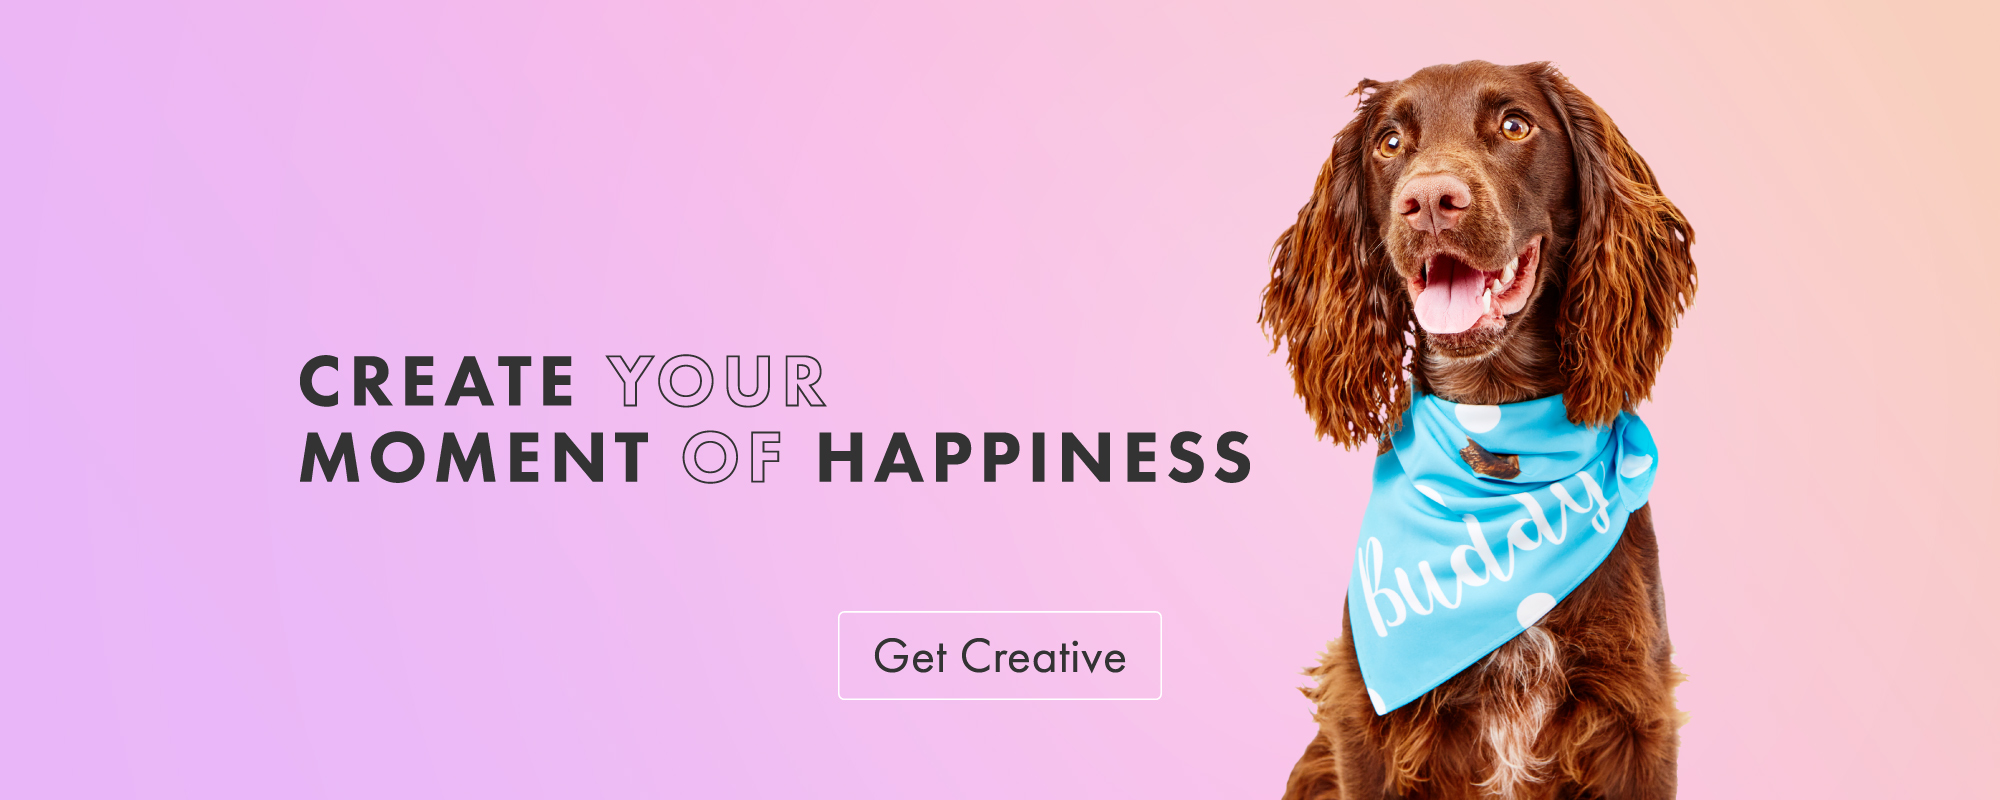 Create Your Moment Of Happiness